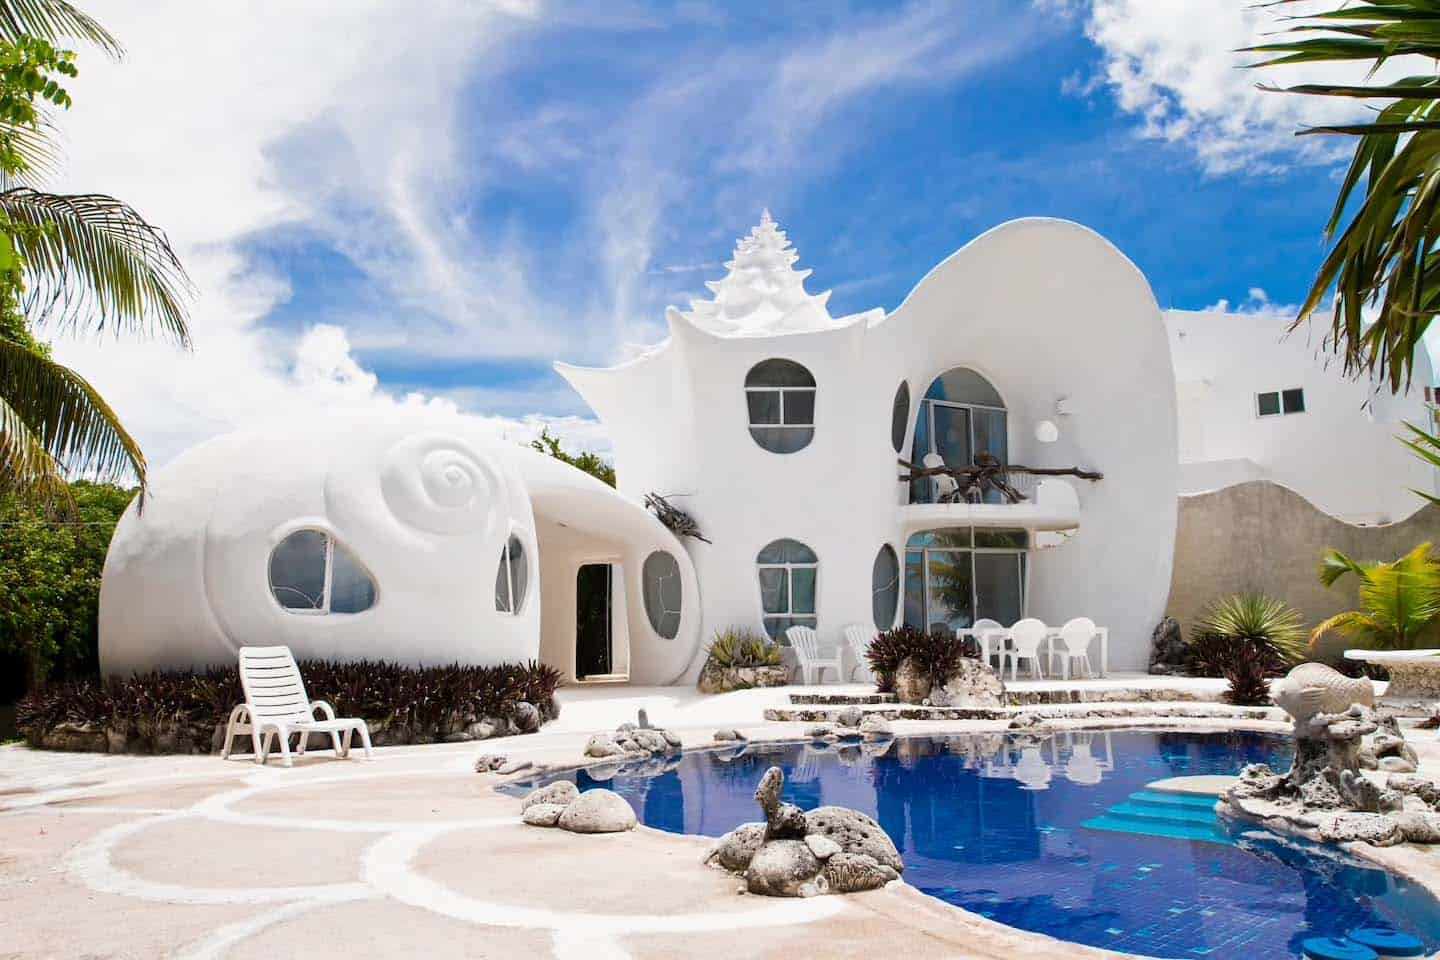 Take A Dreamy Vacation In A Seashell House On Isla Mujeres Mexico